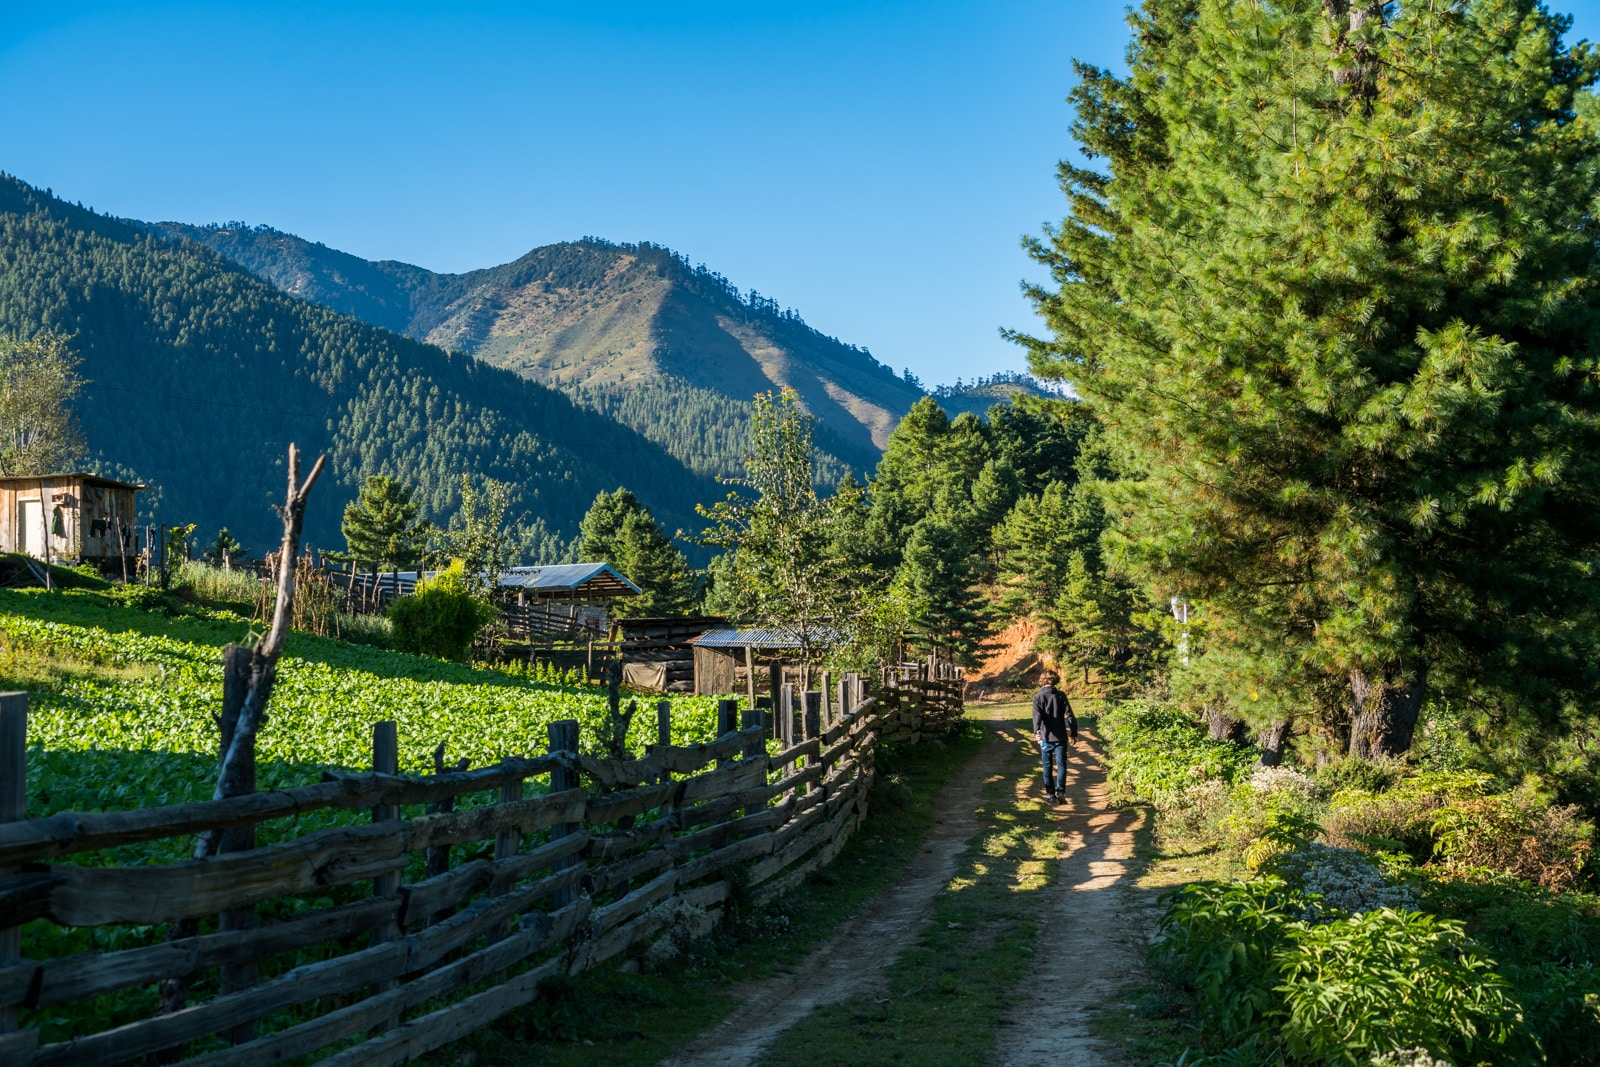 A review of our guided tour in Bhutan - Walking on a path in Phobjikha Valley on our own - Lost With Purpose travel blog